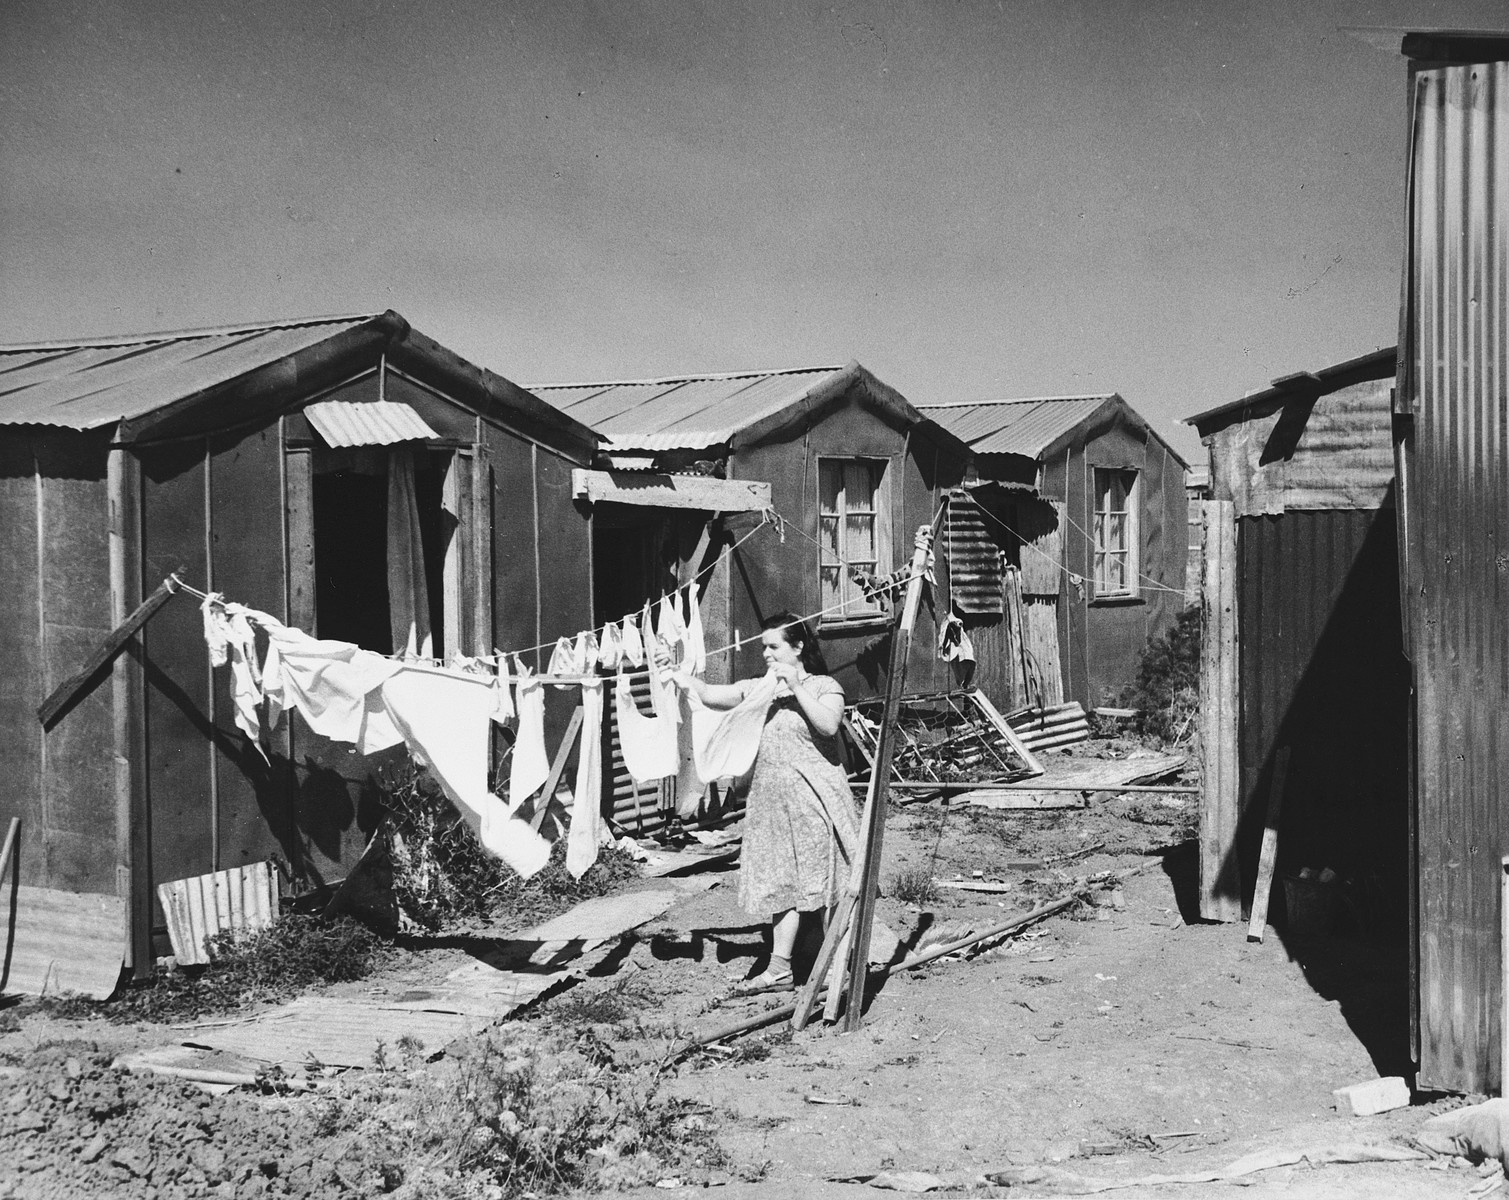 A new immigrant hangs her laundry outside a prefabricated shack in Tel Shachar.